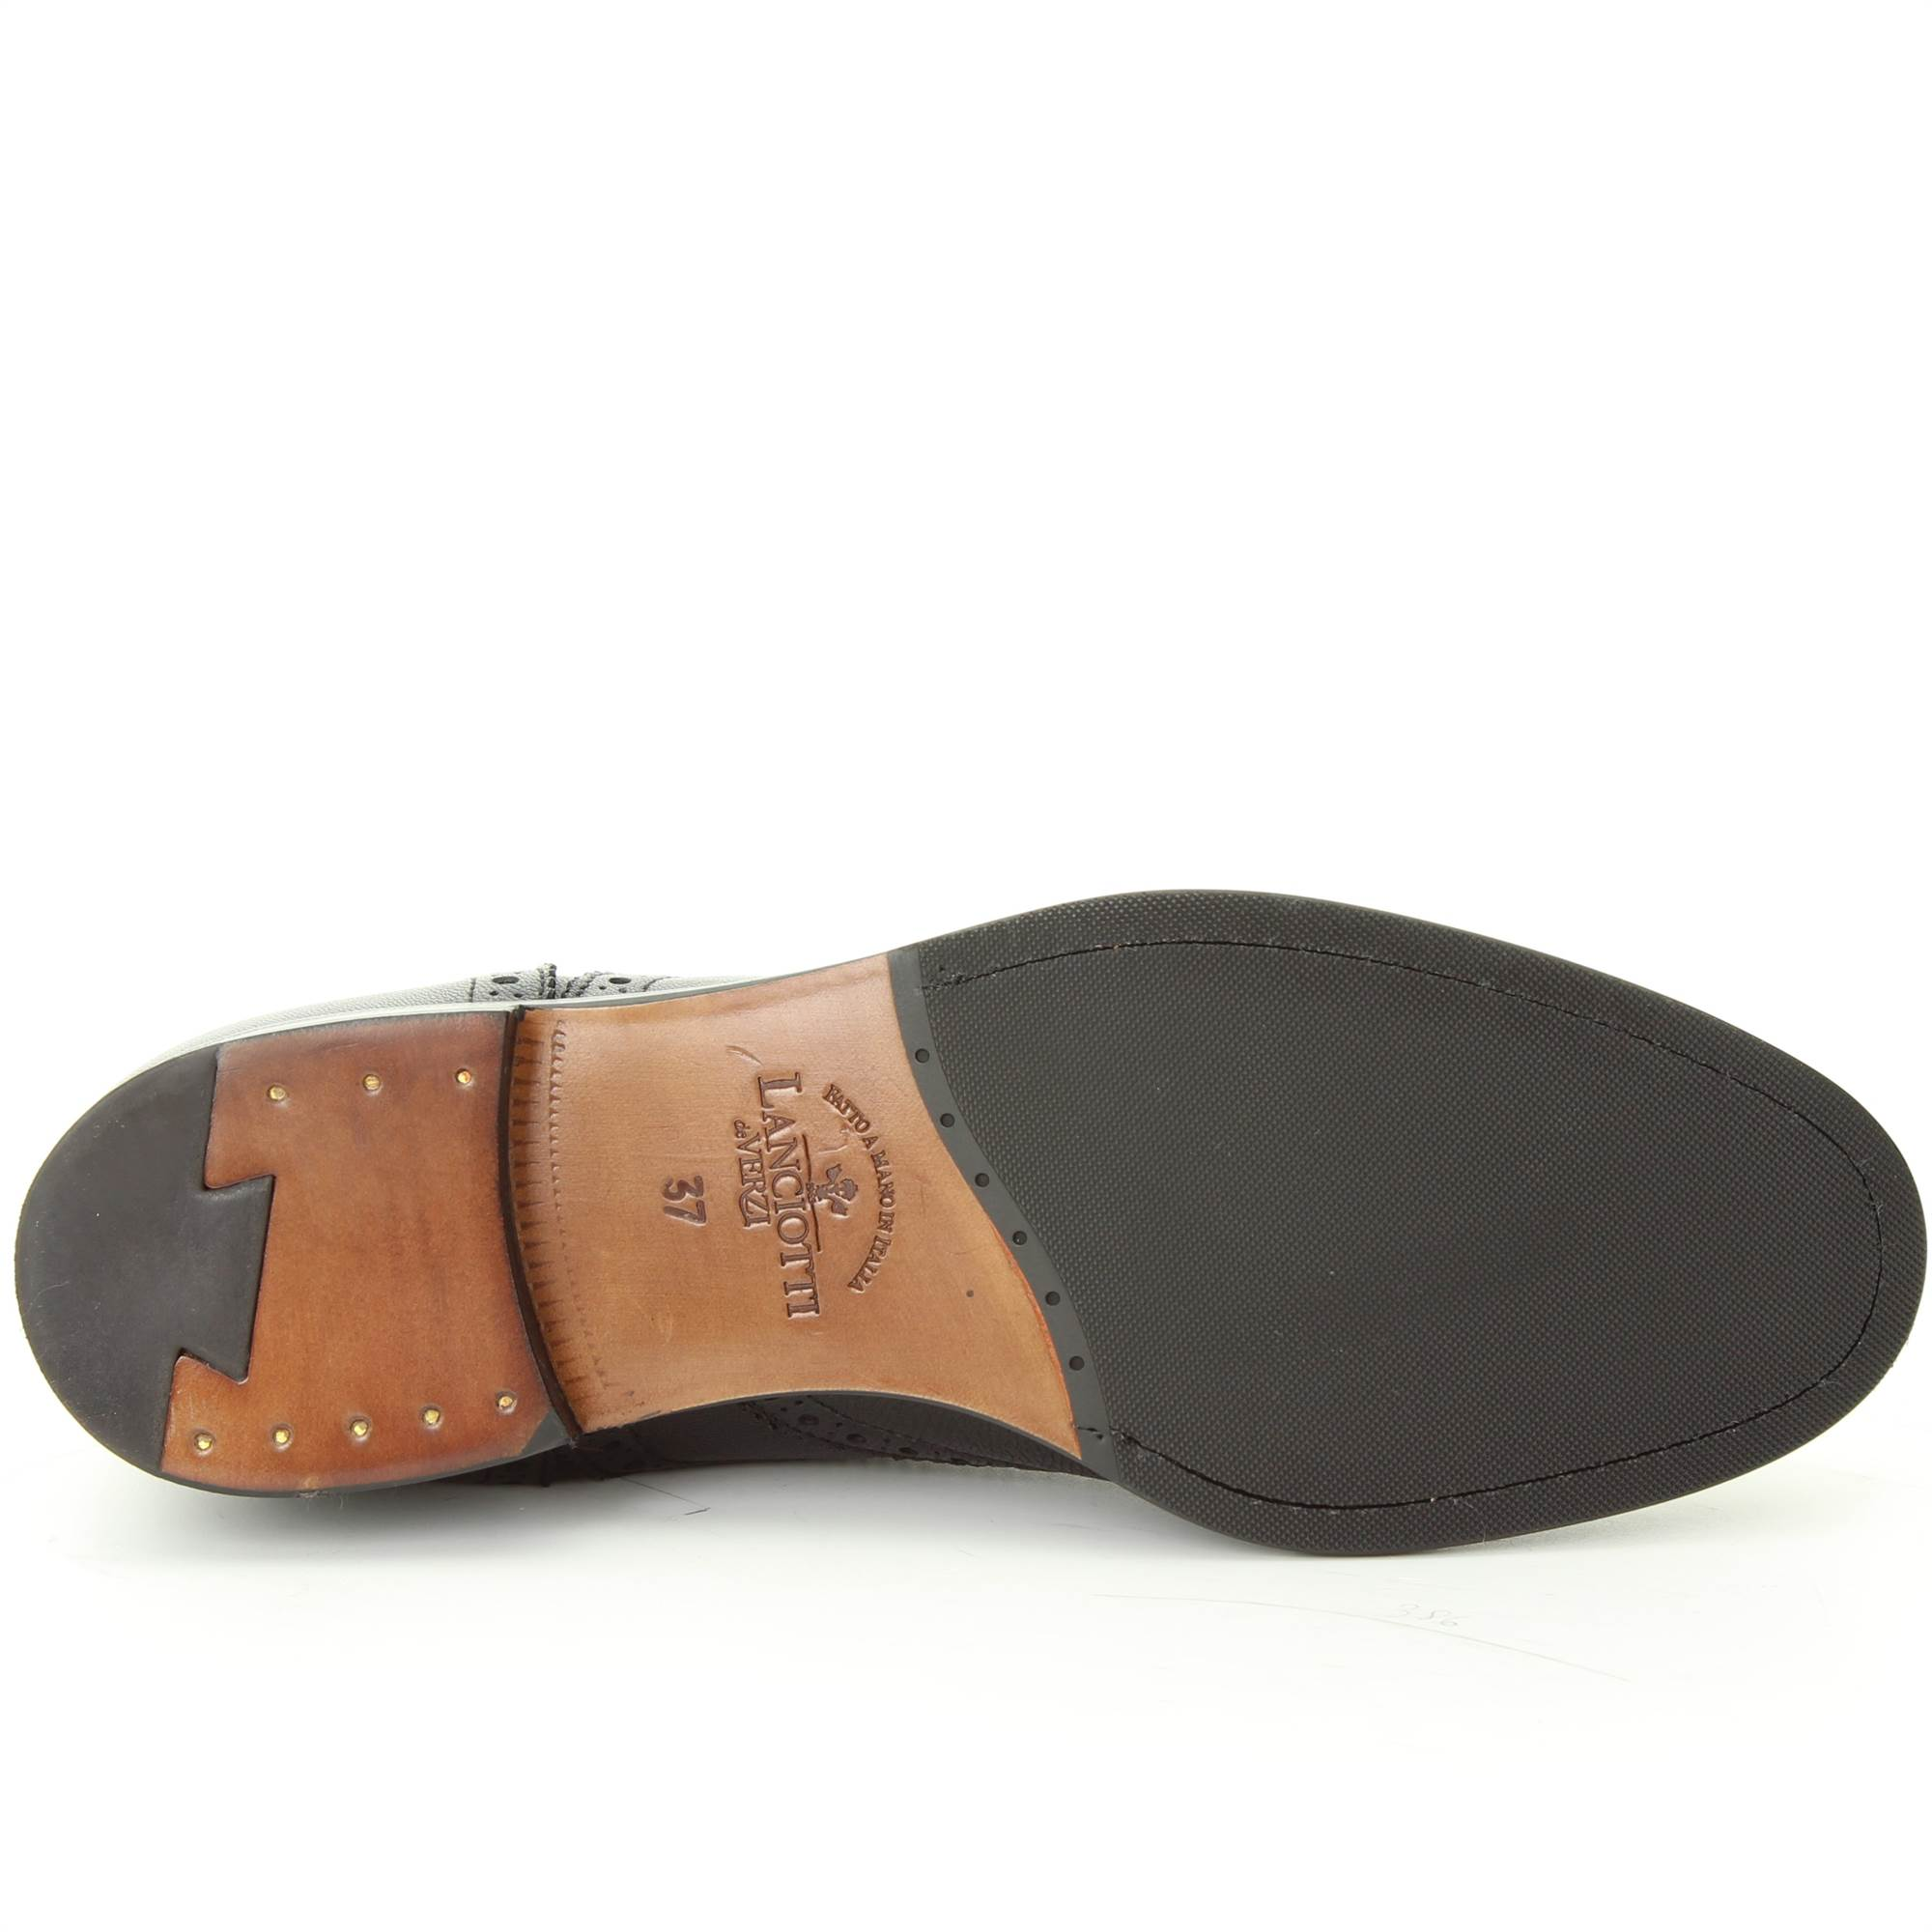 LANCIOTTI DE VERZI 696P NERO Shoes Woman beatles